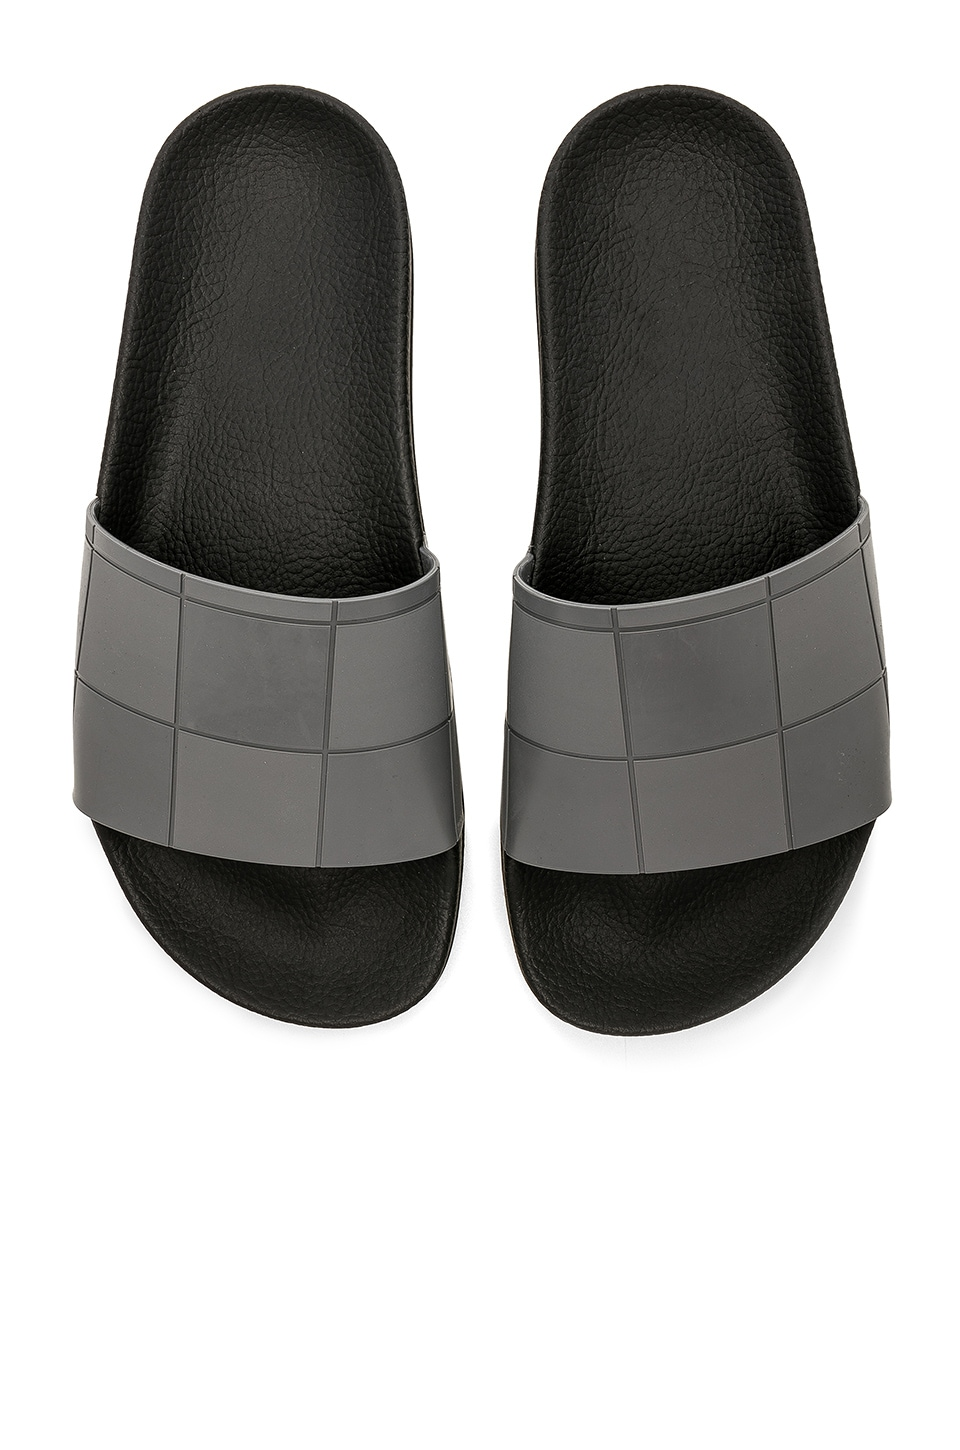 adidas by Raf Simons Adilette Checkerboard Slide in Core Black & Granite